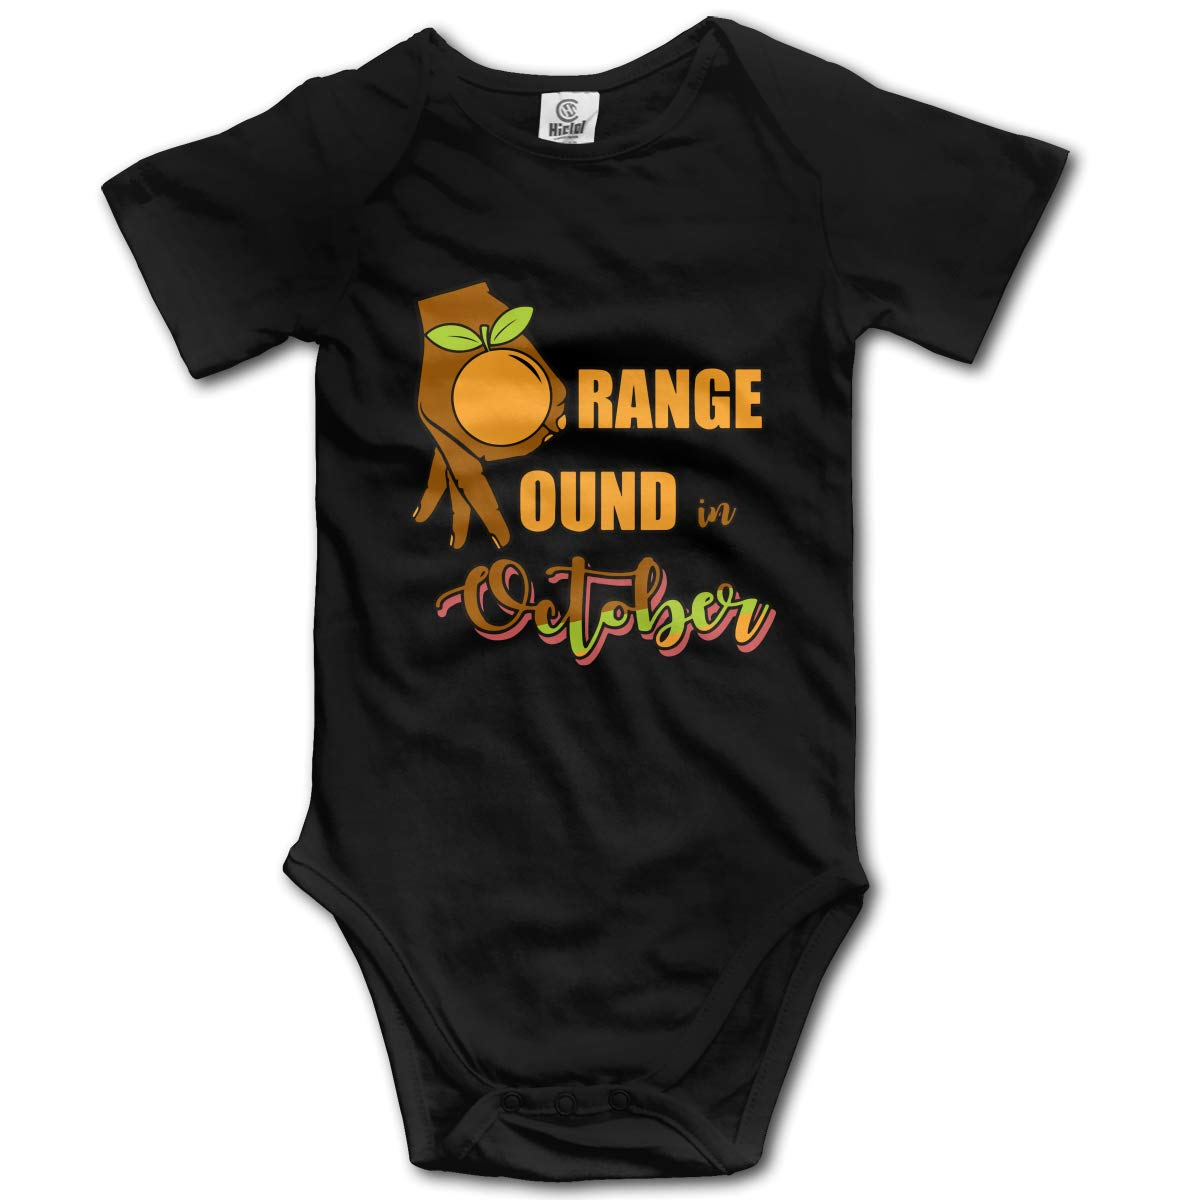 Orange Mound in October Suit 6-24 Months Short Sleeve Baby Clothes Climbing Clothes